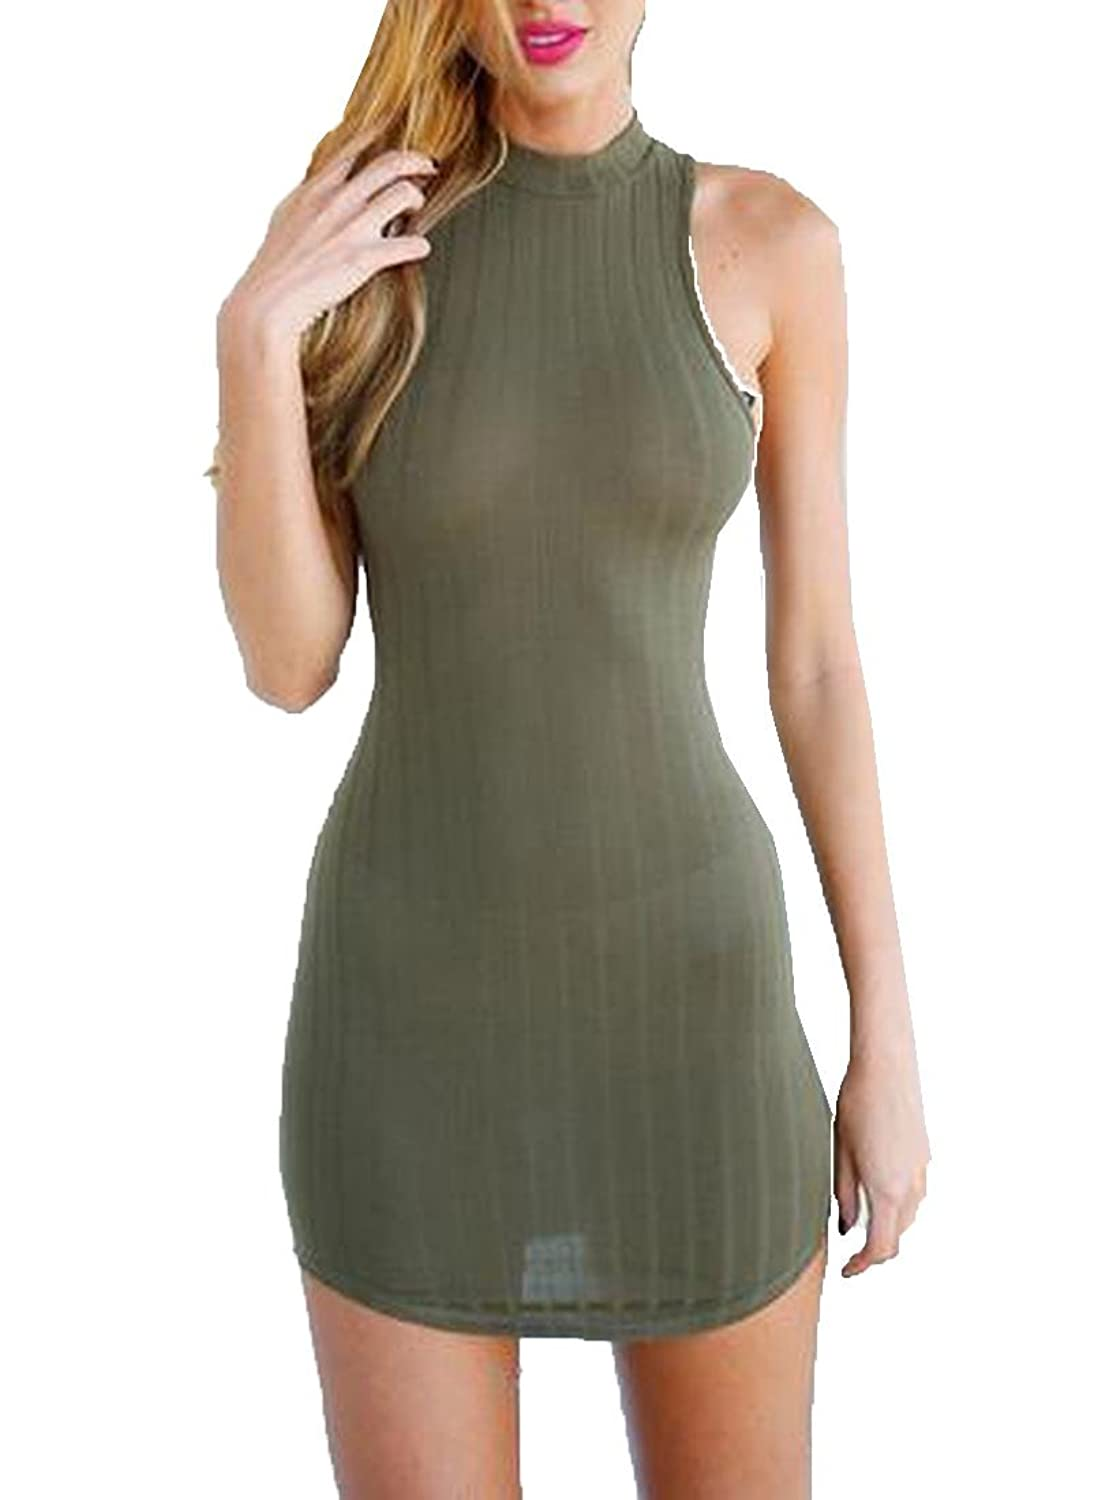 Abetteric Womens Essential Kniting Back Cross Hollow Out Bodycon Dress